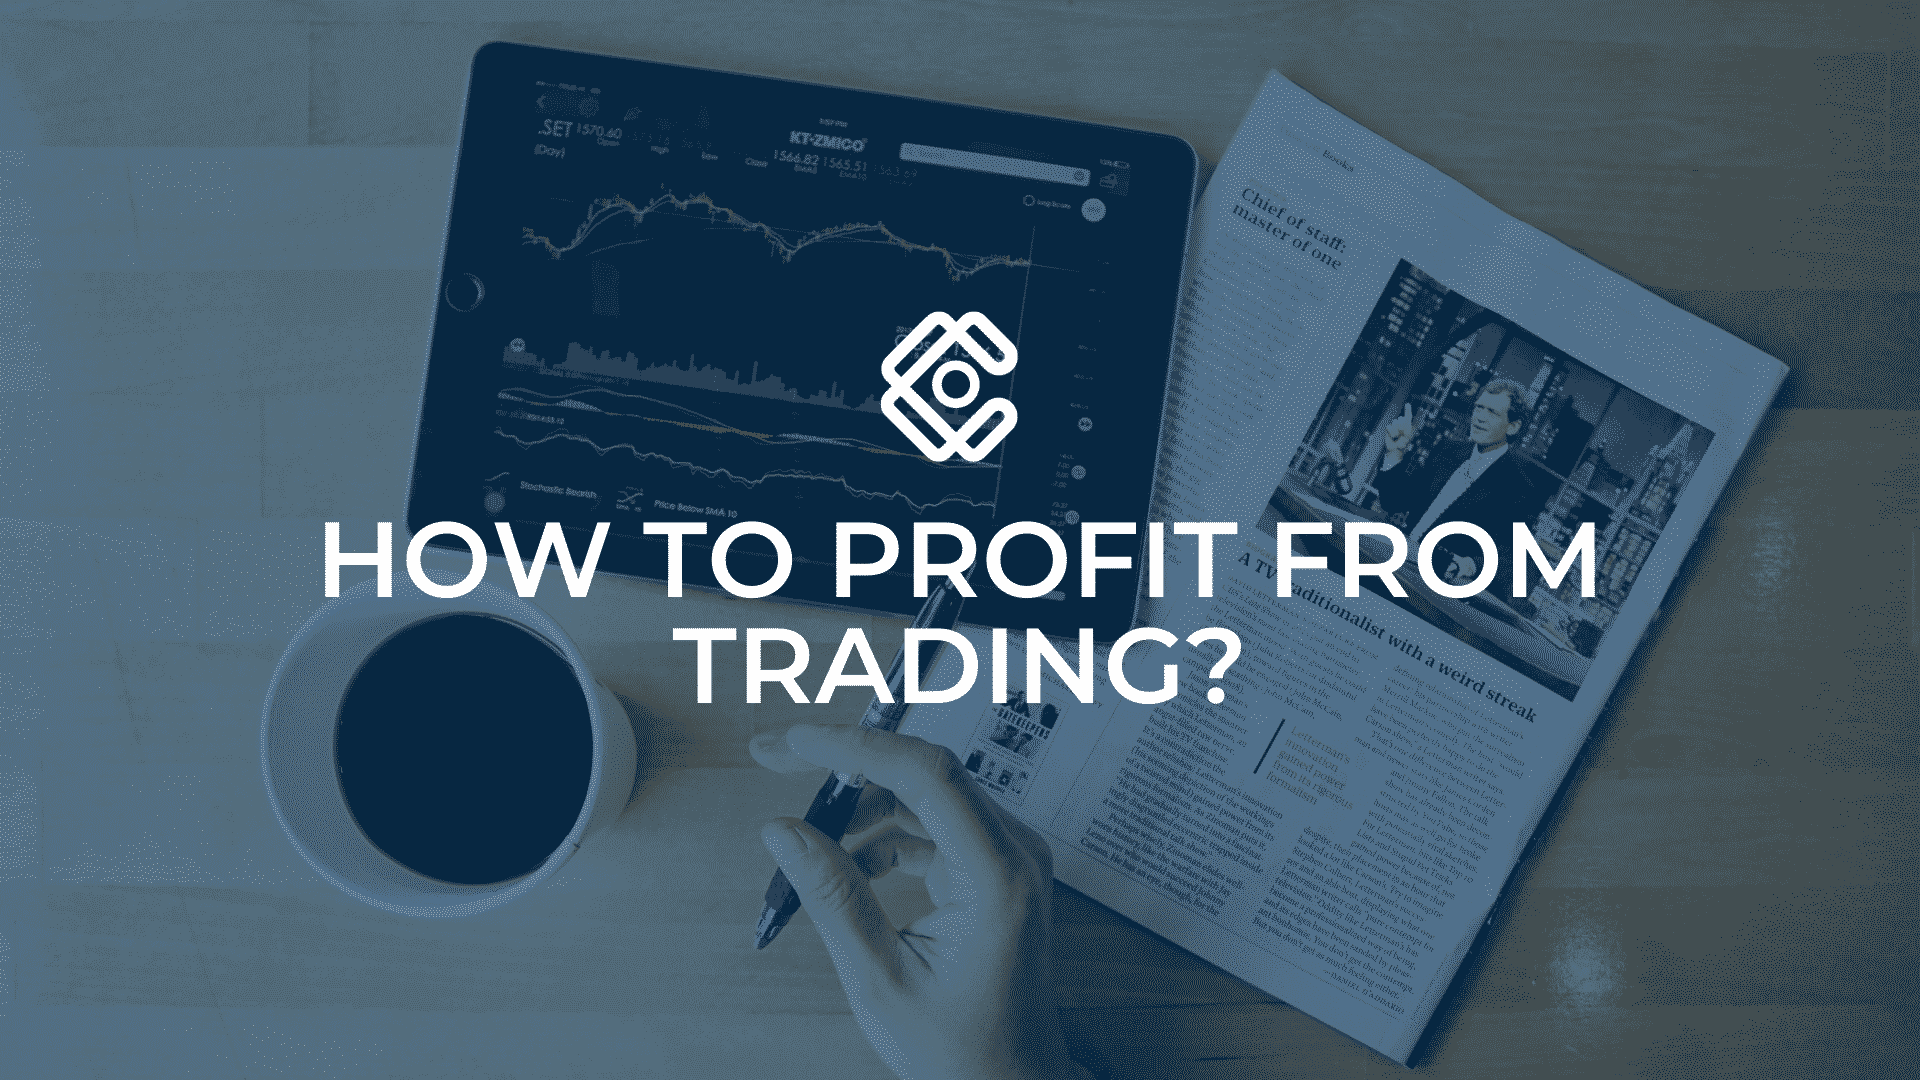 How to profit from trading?